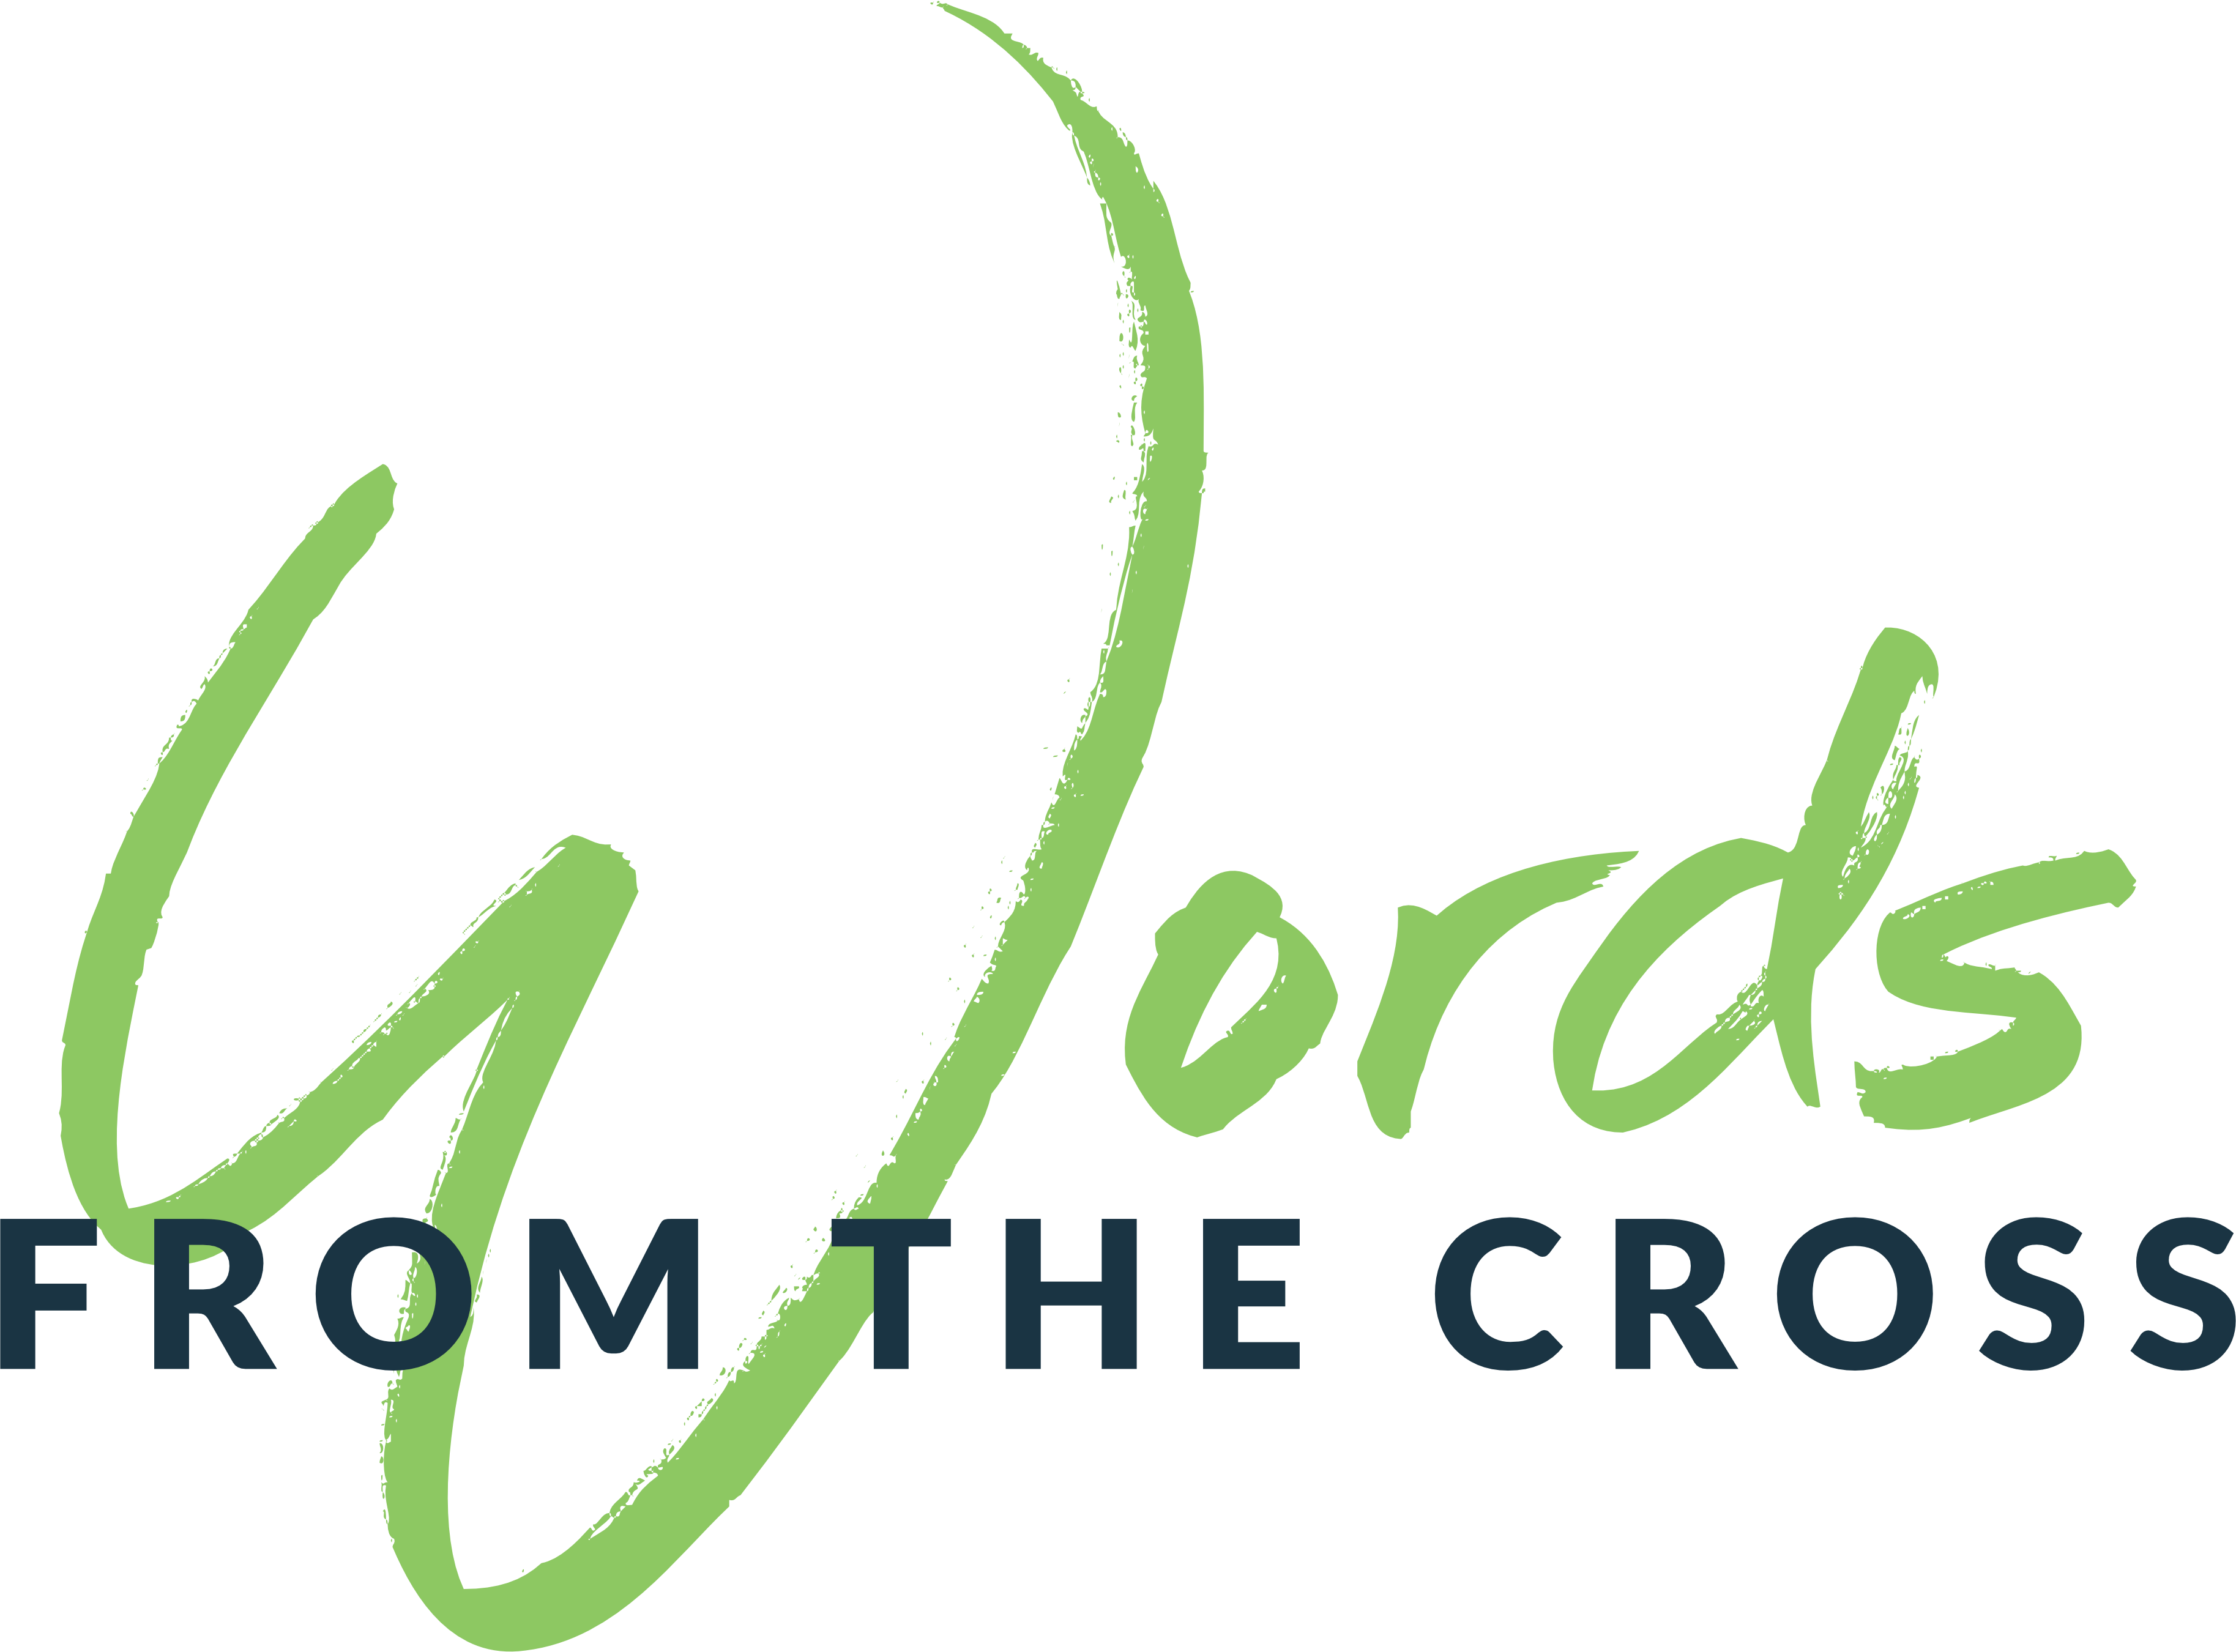 Words-from-the-Cross-Text@2x